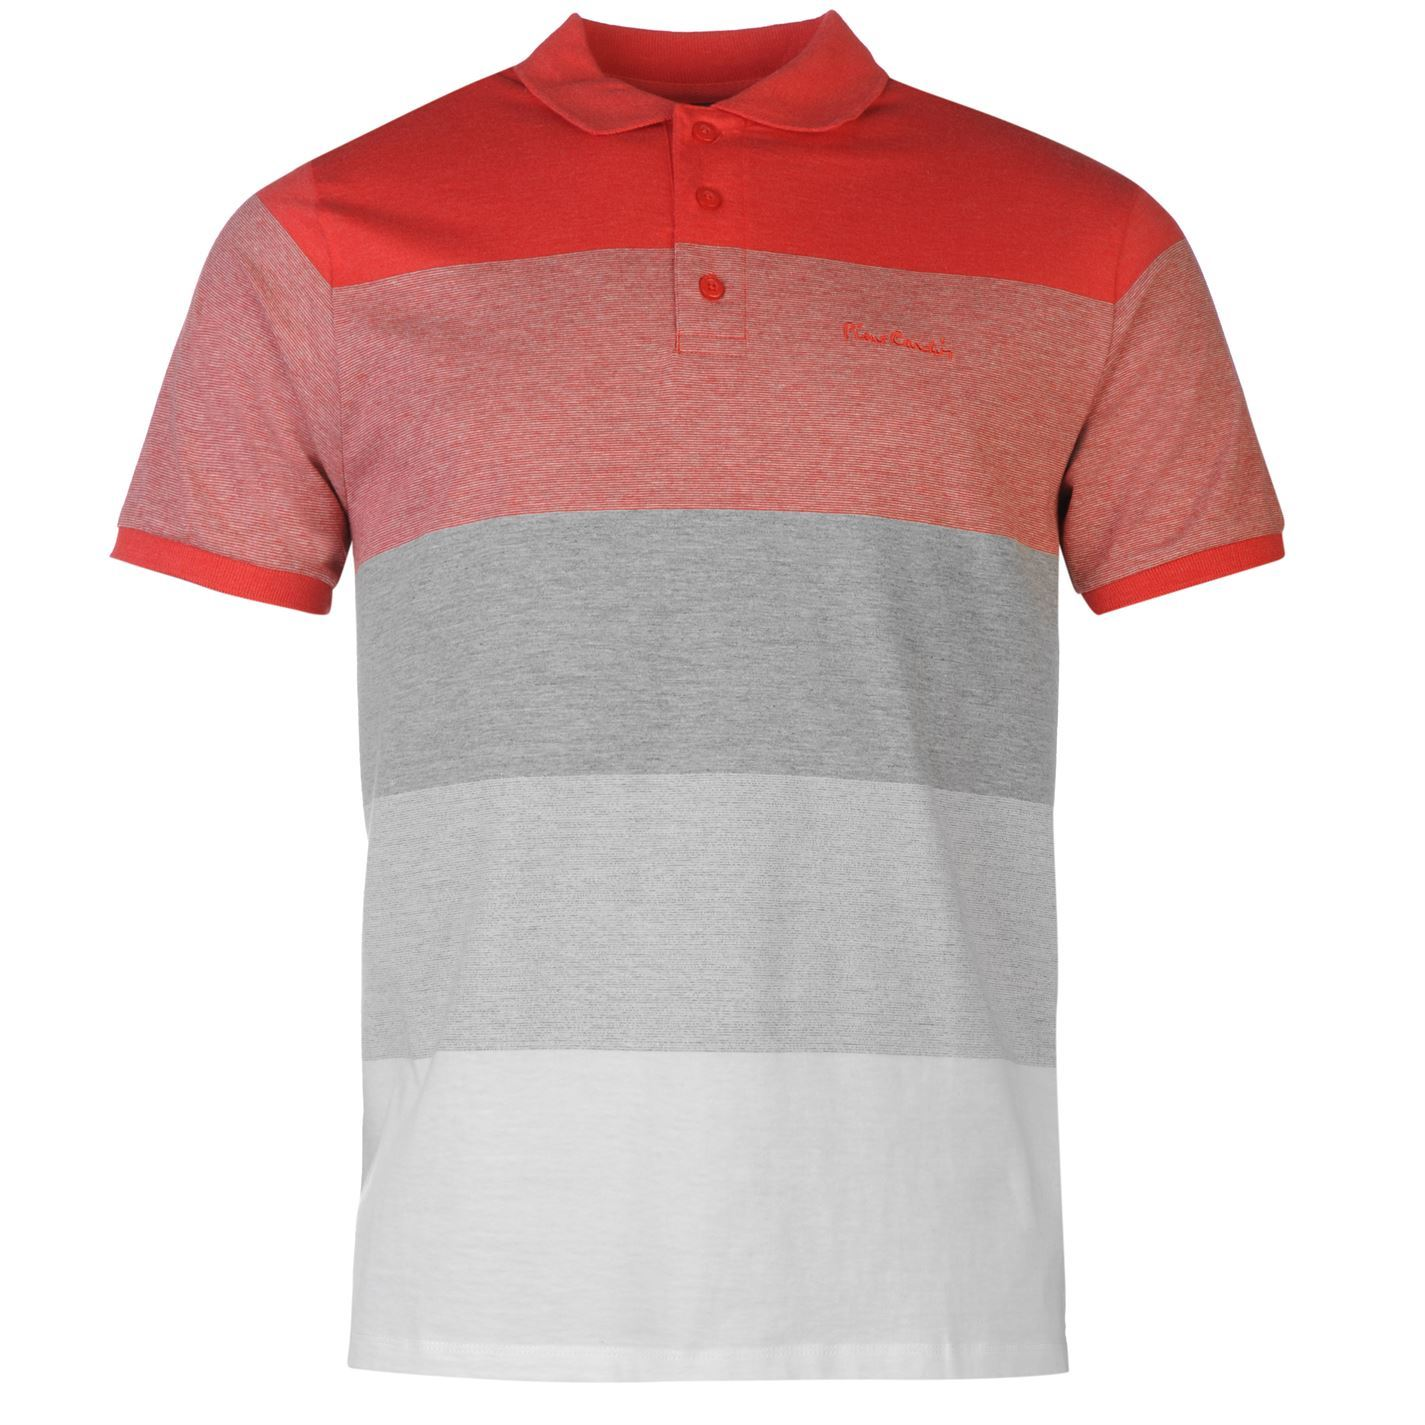 pierre cardin panel polo shirt mens red grey top t shirt. Black Bedroom Furniture Sets. Home Design Ideas